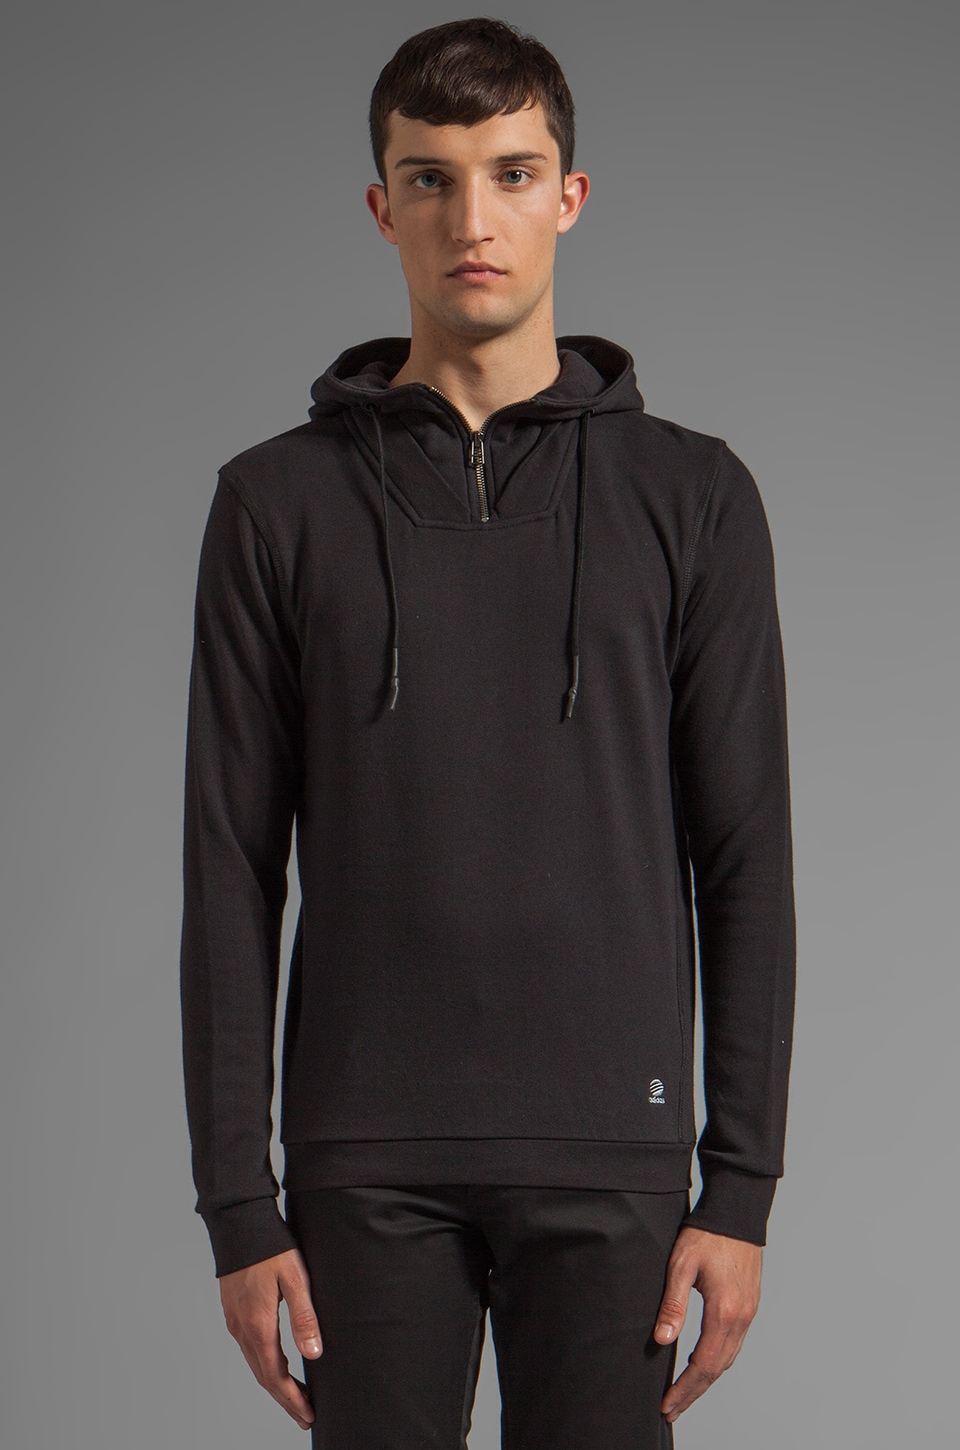 adidas SLVR FT Hoody in Black